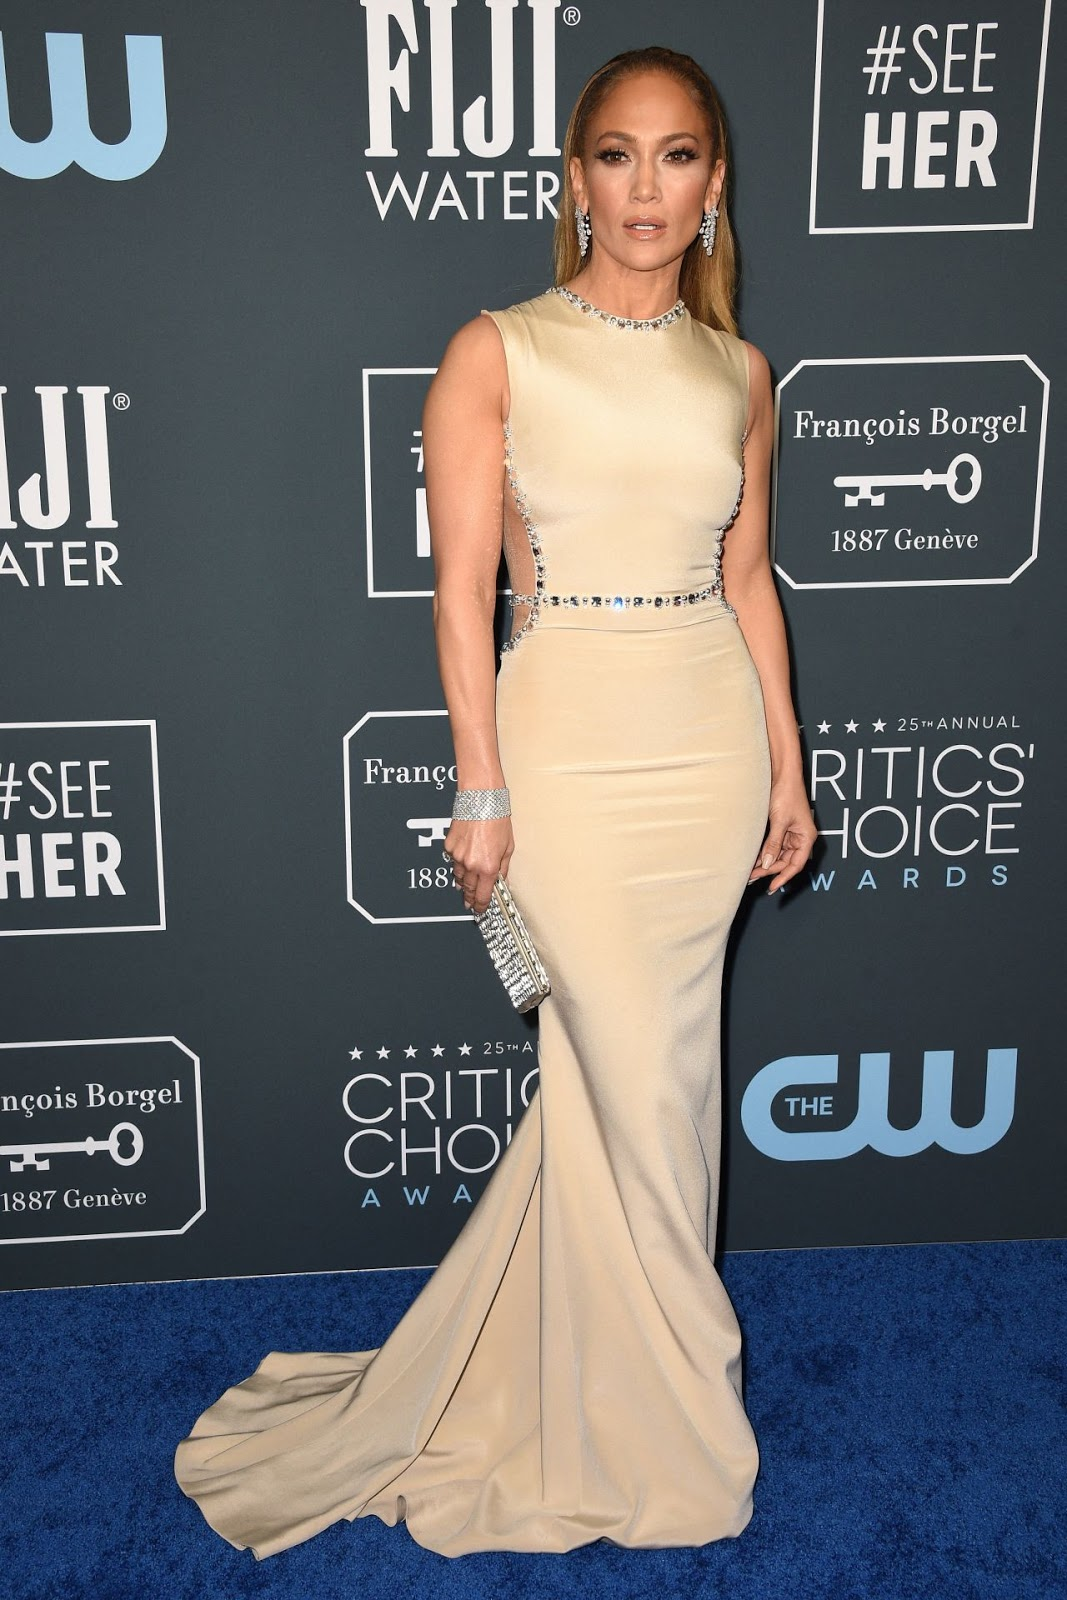 Jennifer Lopez goes backless in Georges Hobeika at the Critics' Choice Awards 2020